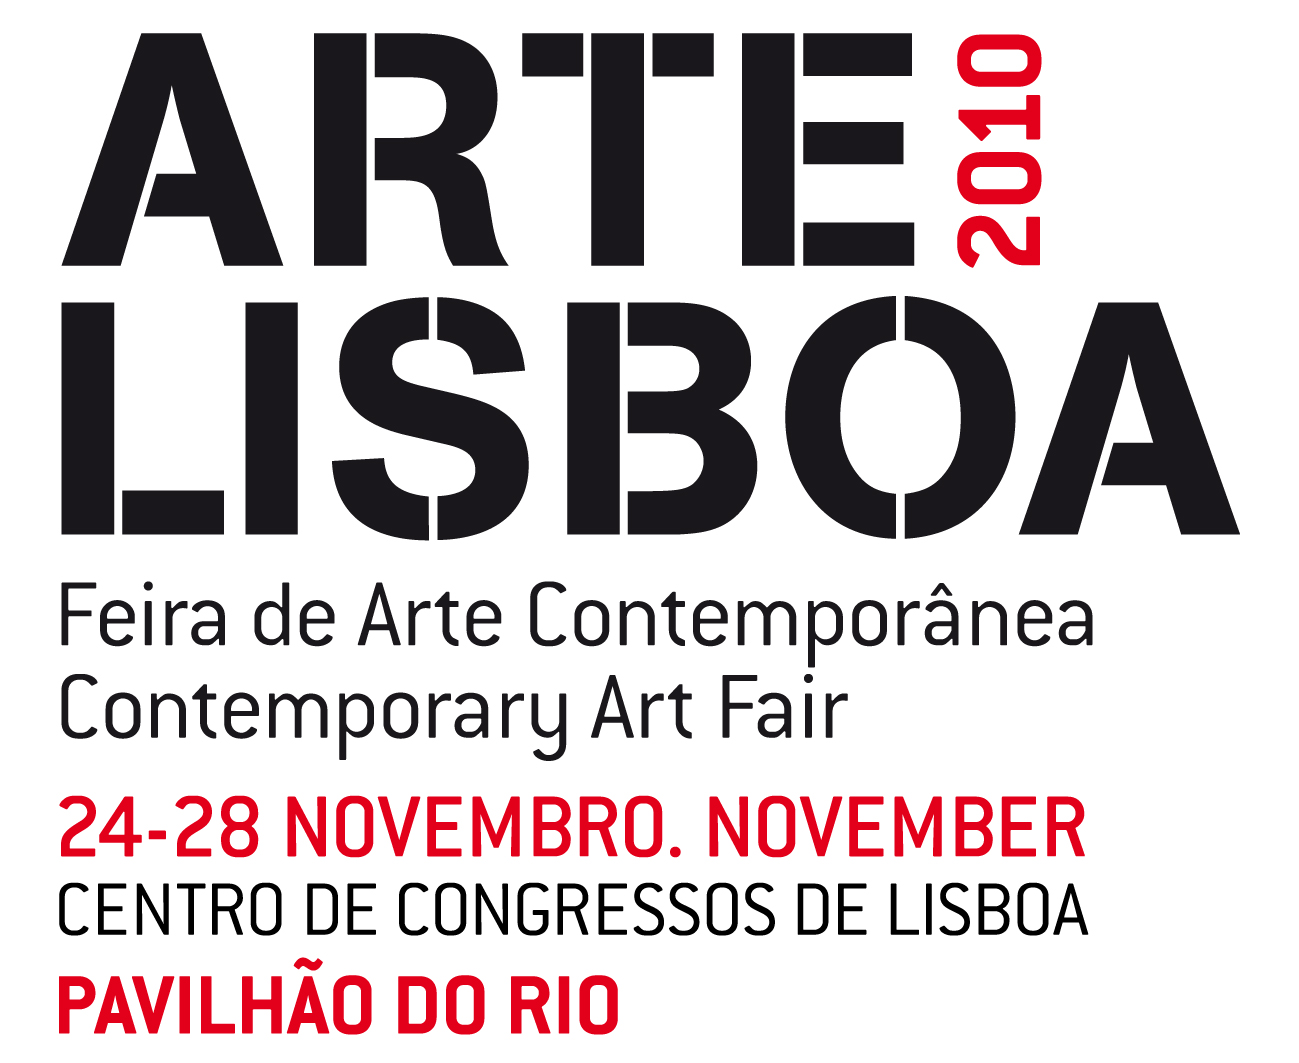 Arte Lisboa, art festival in the Portuguese capital